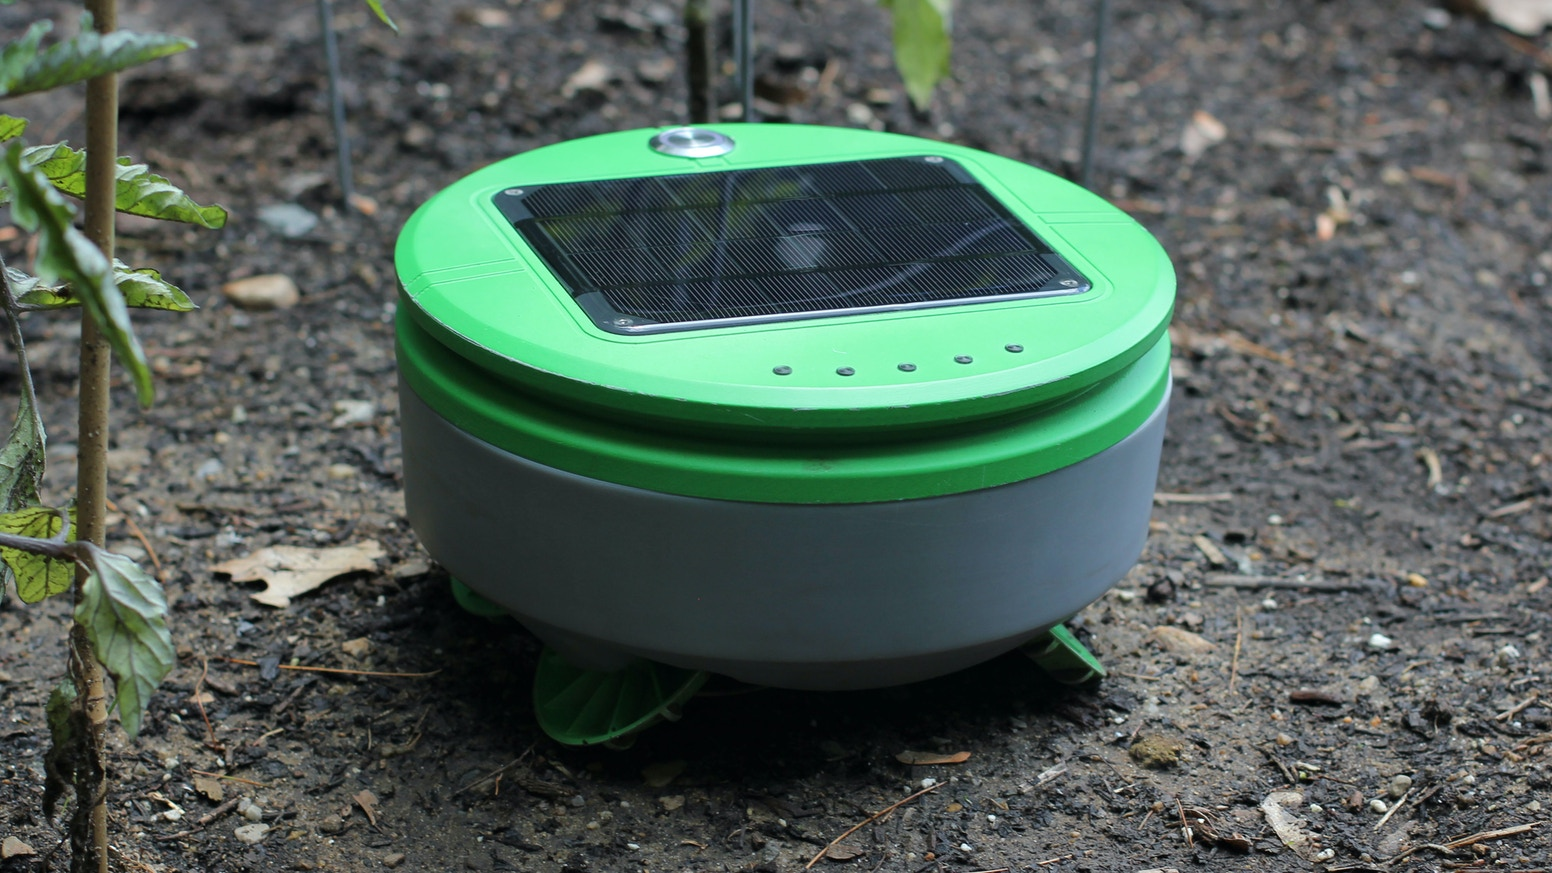 Weatherproof and self-charging, Tertill lives in your vegetable or flower garden and takes